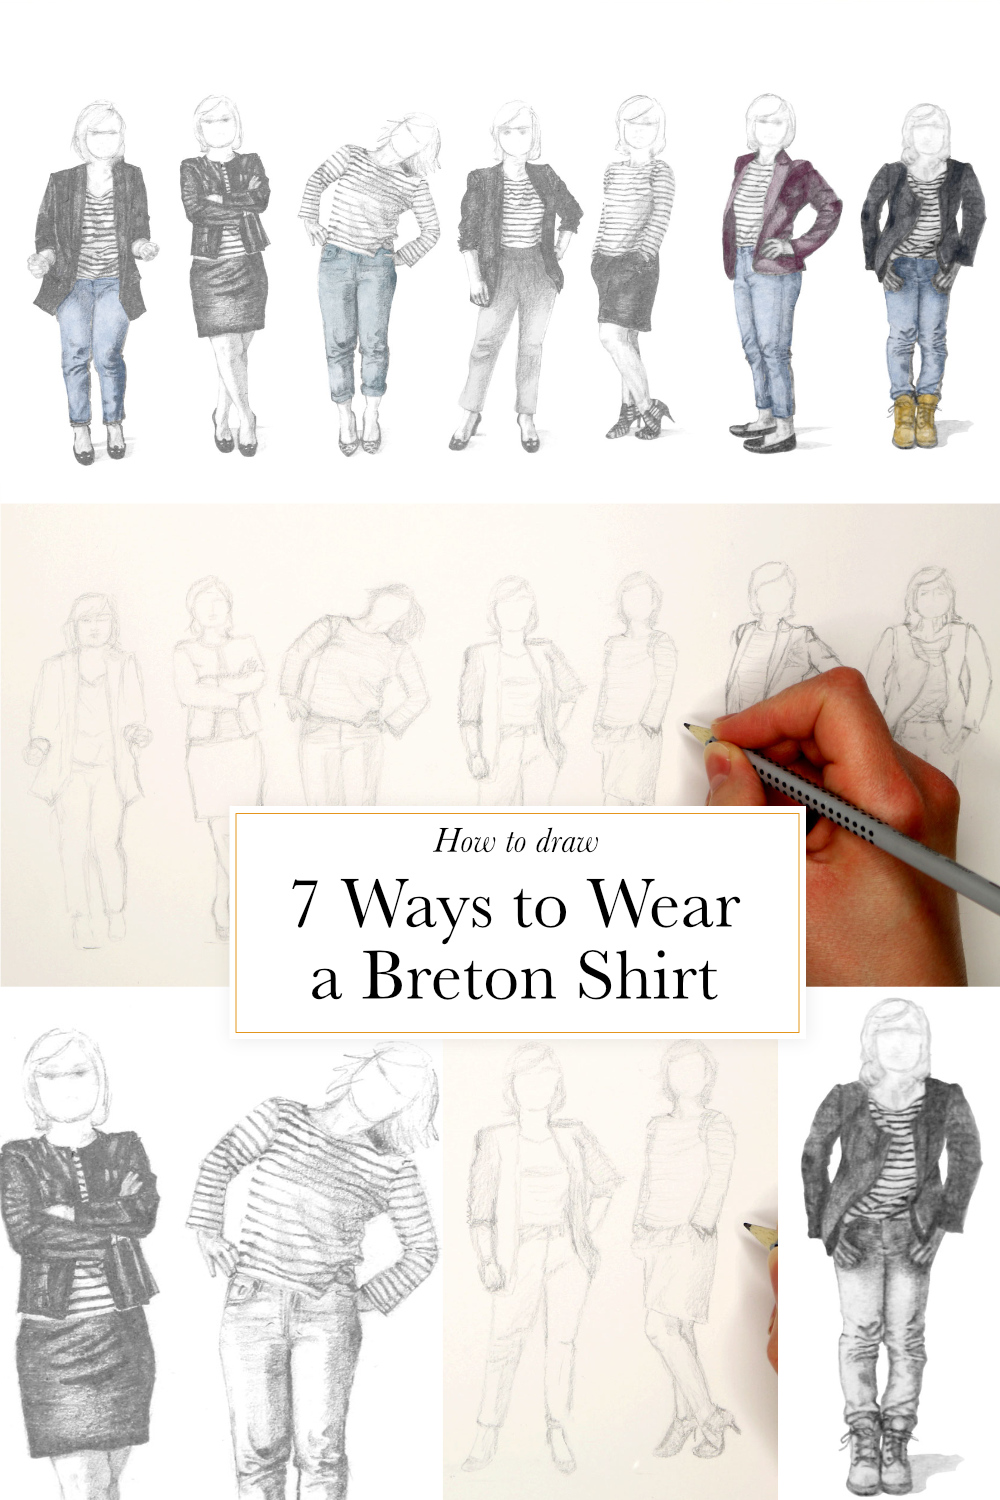 How to draw 7 ways to wear a breton shirt  | The Daily Atelier